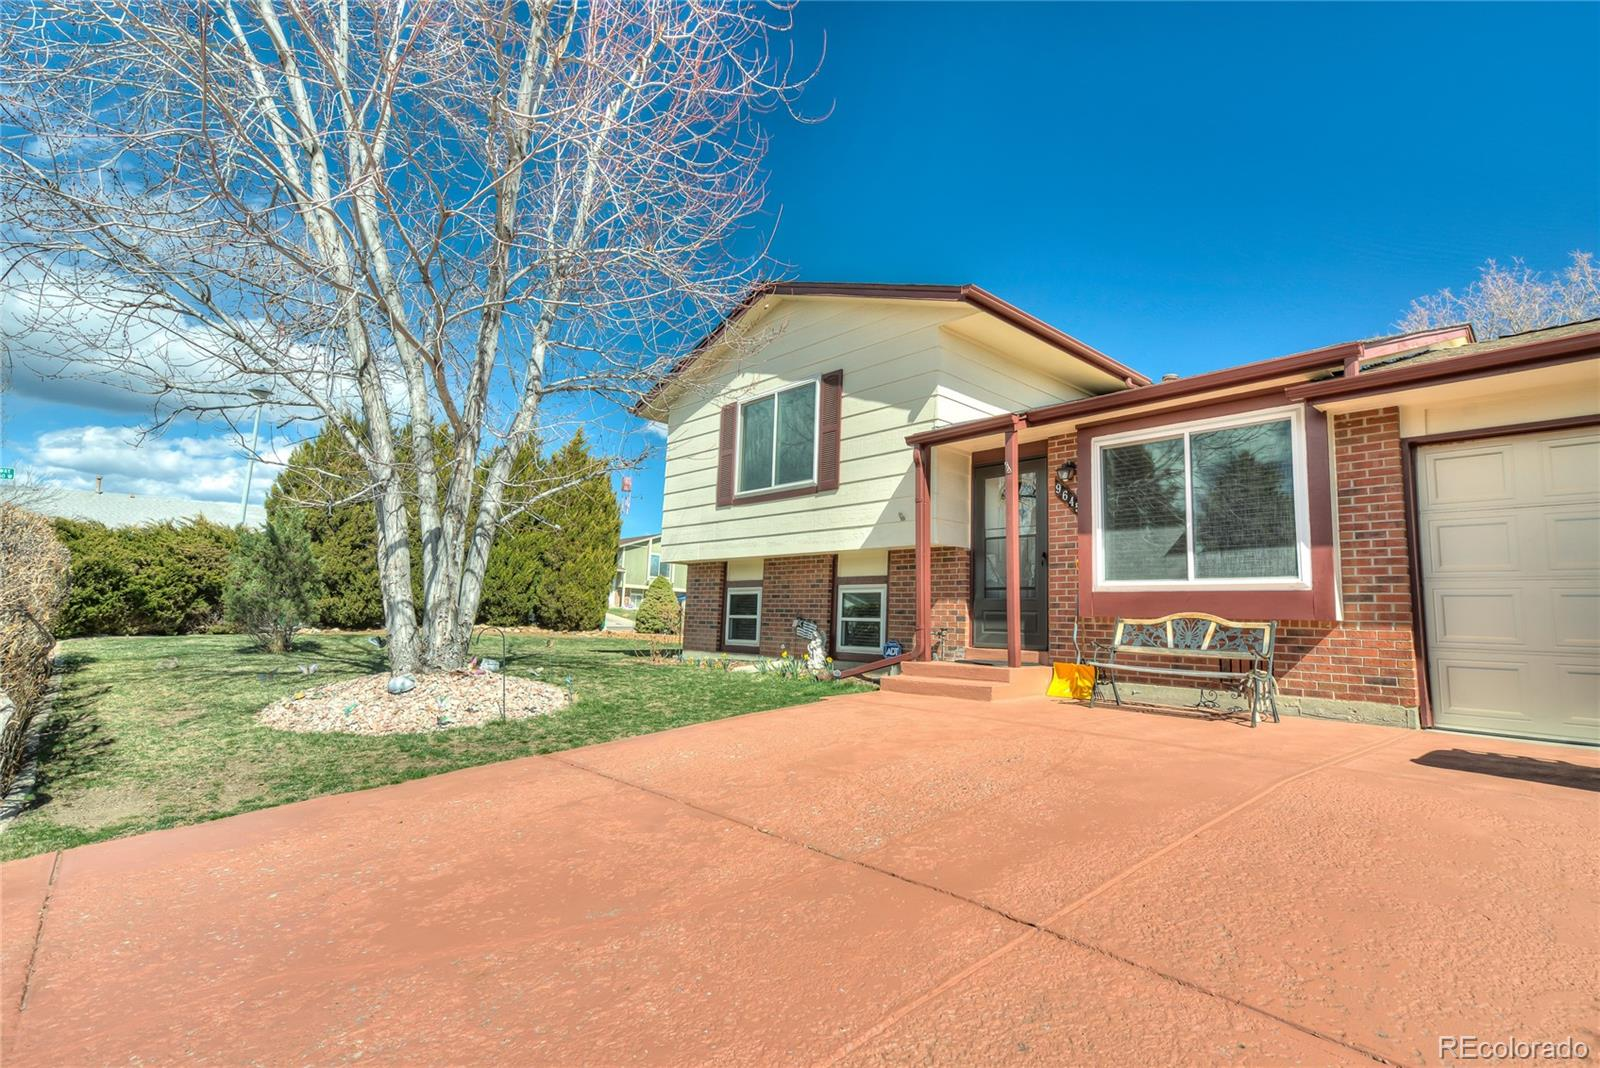 MLS# 2811379 - 27 - 9645 W David Avenue, Littleton, CO 80128